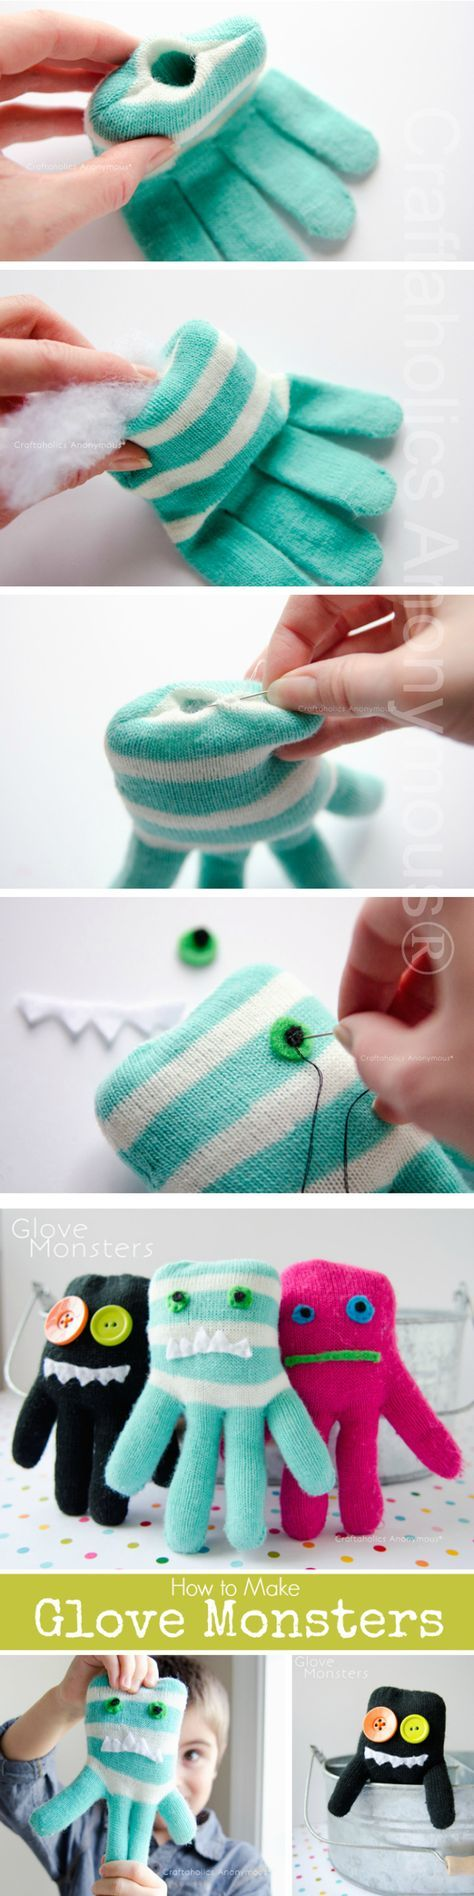 """Glove Monsters....A trio of these adorable glove monsters in the children's section of the library around Halloween! And they're easy. Even me with my """"sewing skills"""" could sew these. haha"""